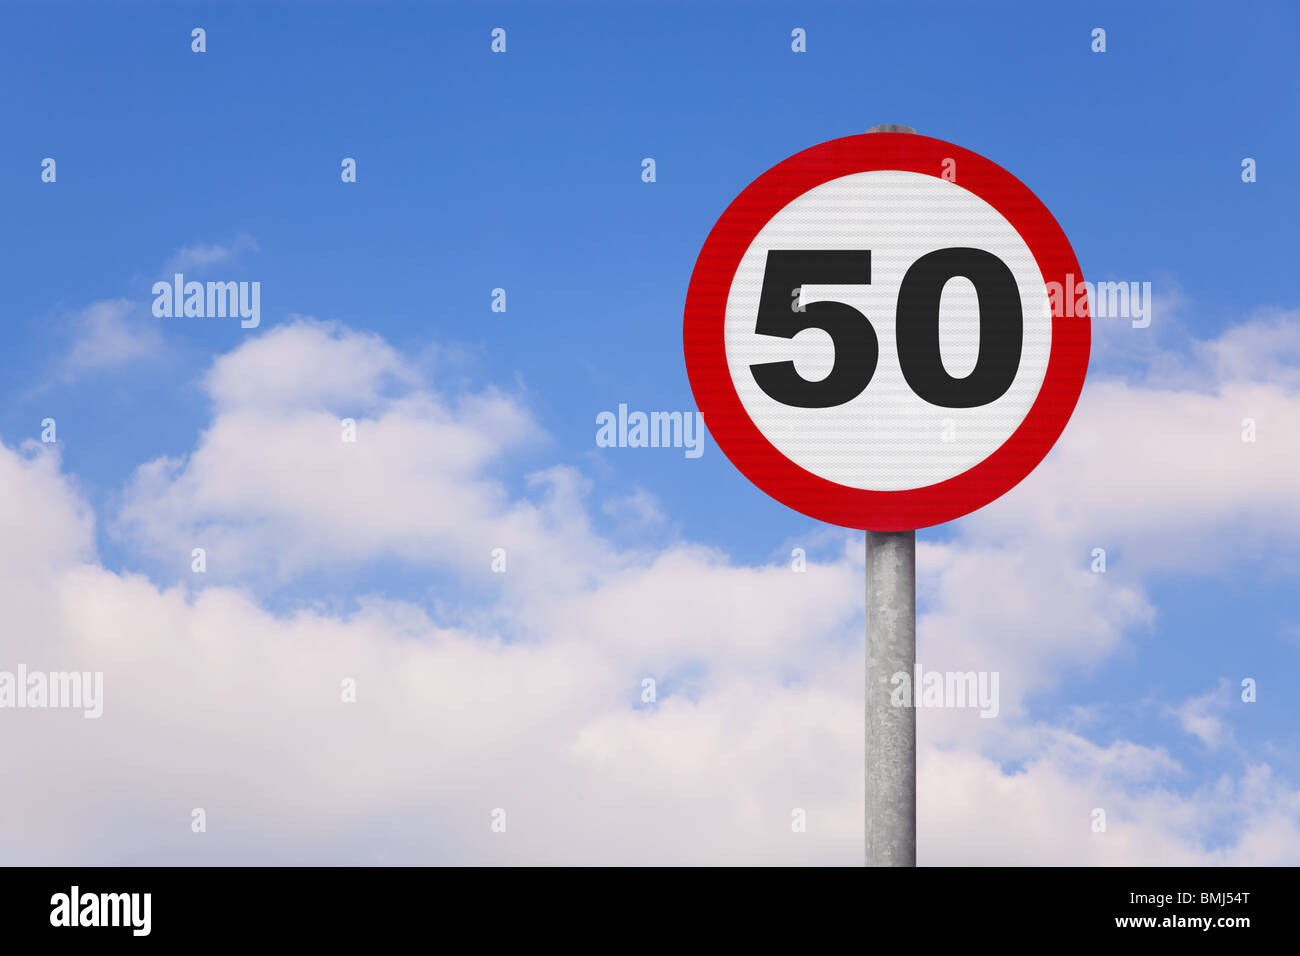 A round roadsign with the number 50 on it against a blue cloudy sky. - Stock Image